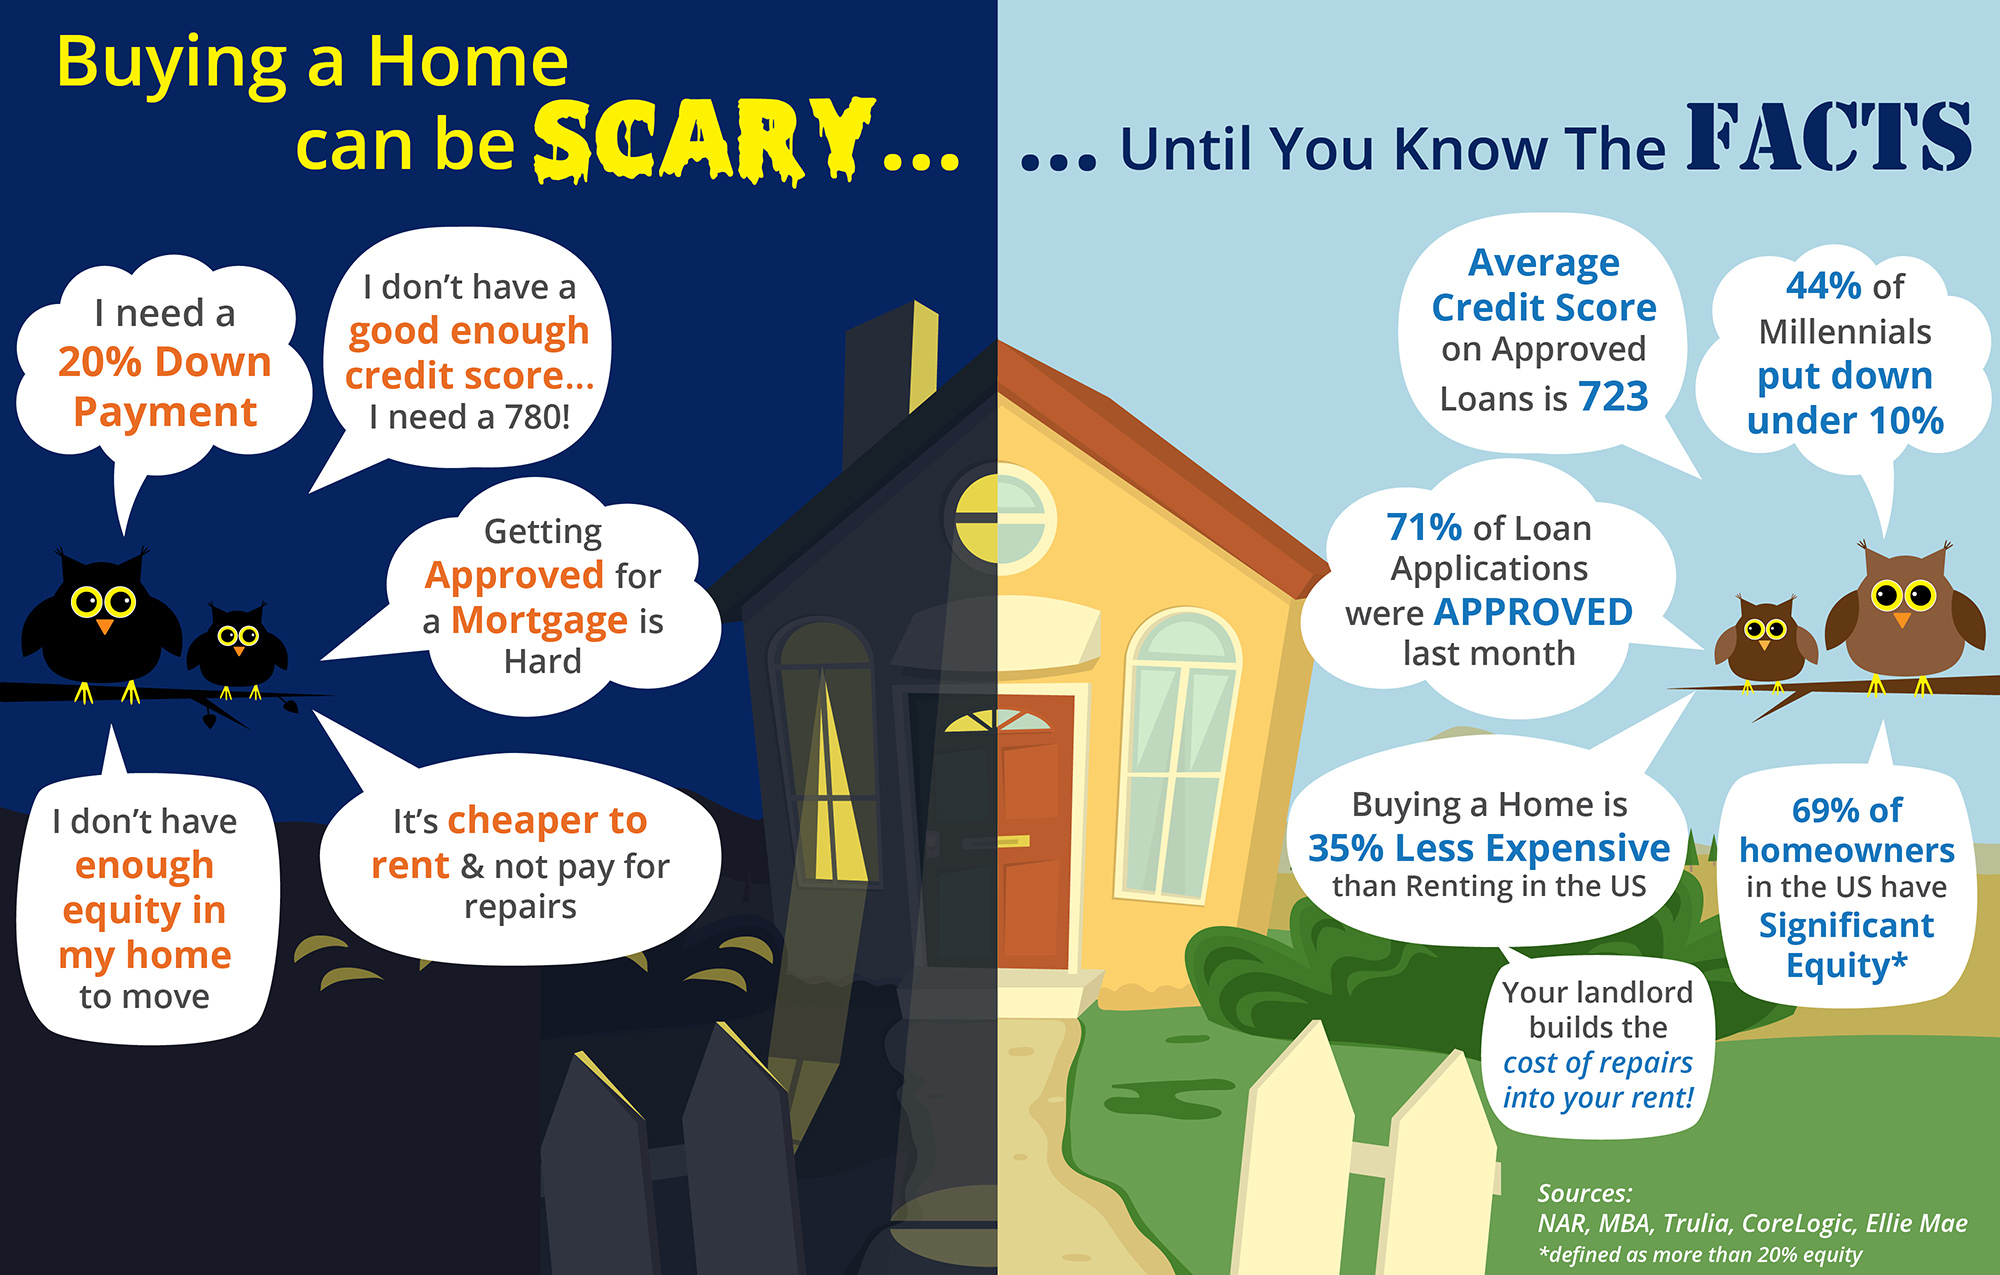 Buying Homes Can Be Scary